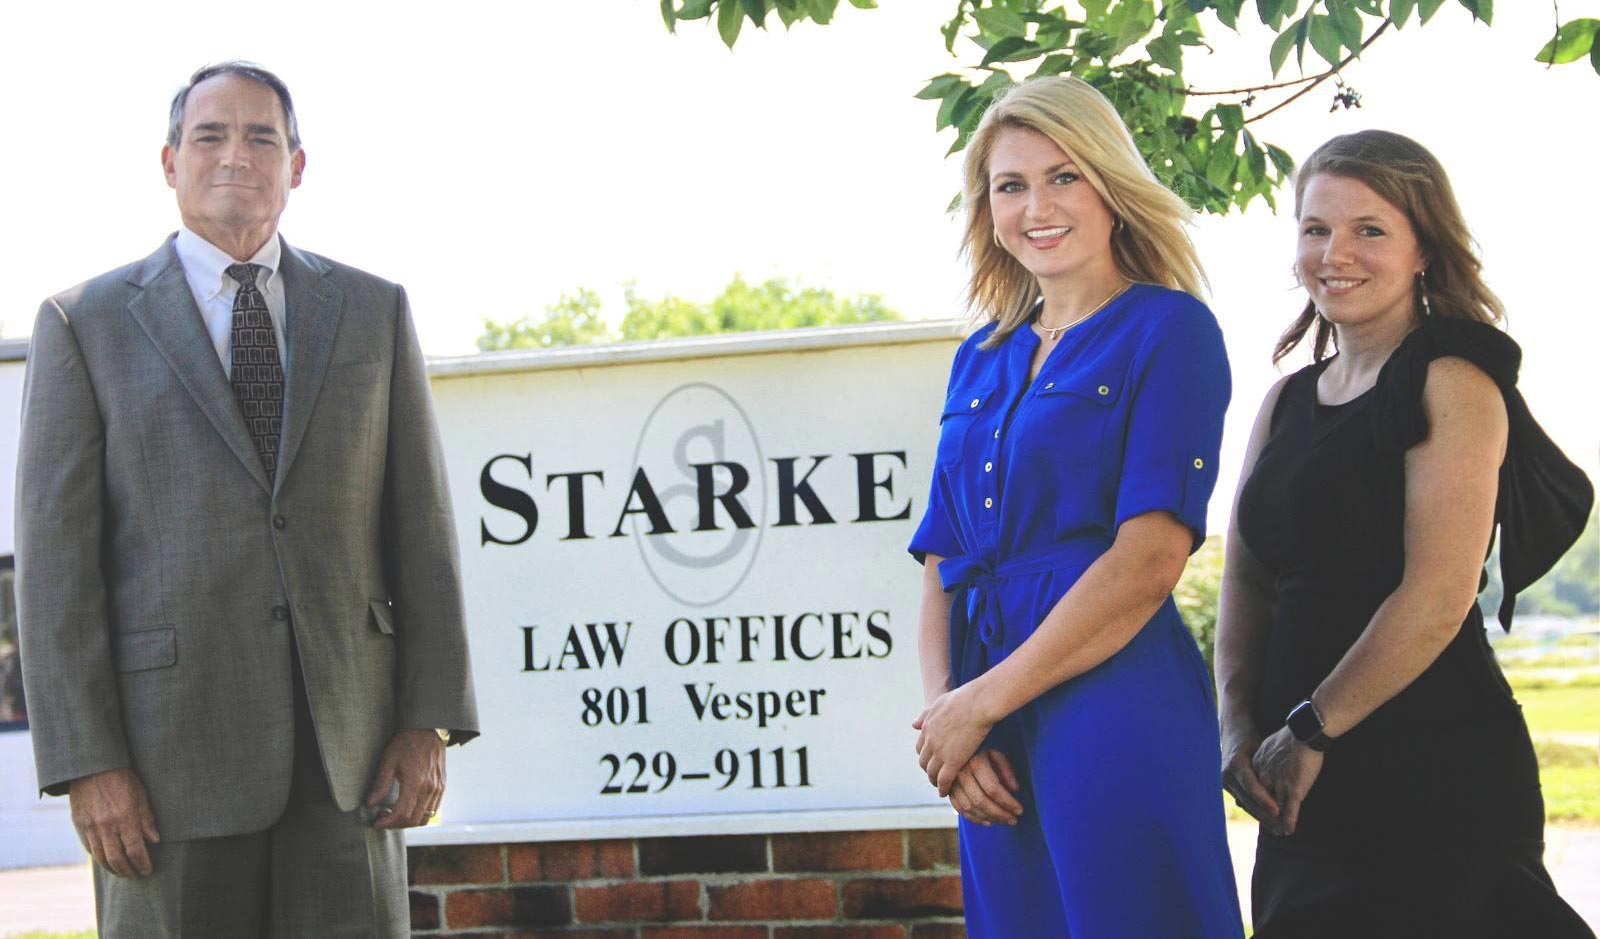 Starke Law Offices staff in front of their office building